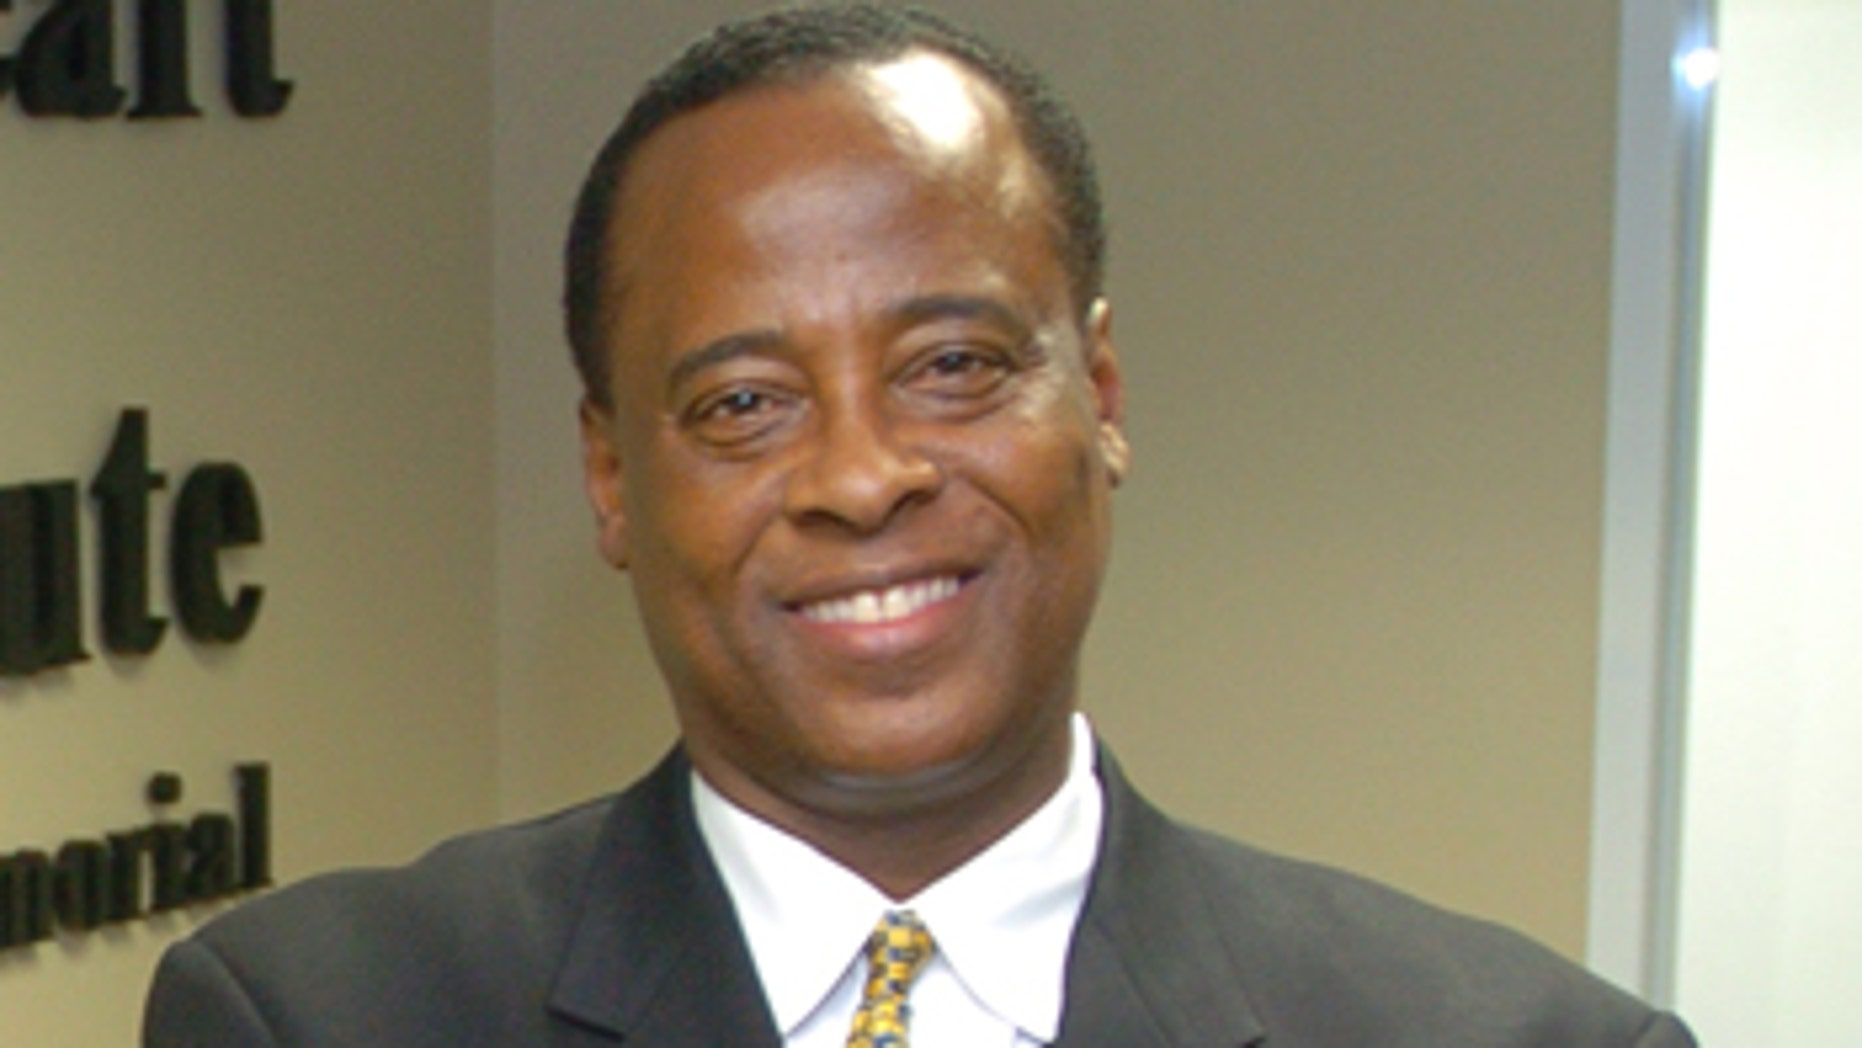 In this July 7, 2006 photo, Dr. Conrad Murray poses for a photo as he opens the Acres Homes Cardiovascular Center at the Tidwell Professional Building, in Houston. A woman who answered the phone Friday, June 26, 2009, at Dr. Conrad C. Murray's clinic in Houston confirmed to The Associated Press that Murray was Michael Jackson's cardiologist. Los Angeles police say they want to speak to the doctor but stressed he was not under criminal investigation. (AP Photo/Houston Chronicle)